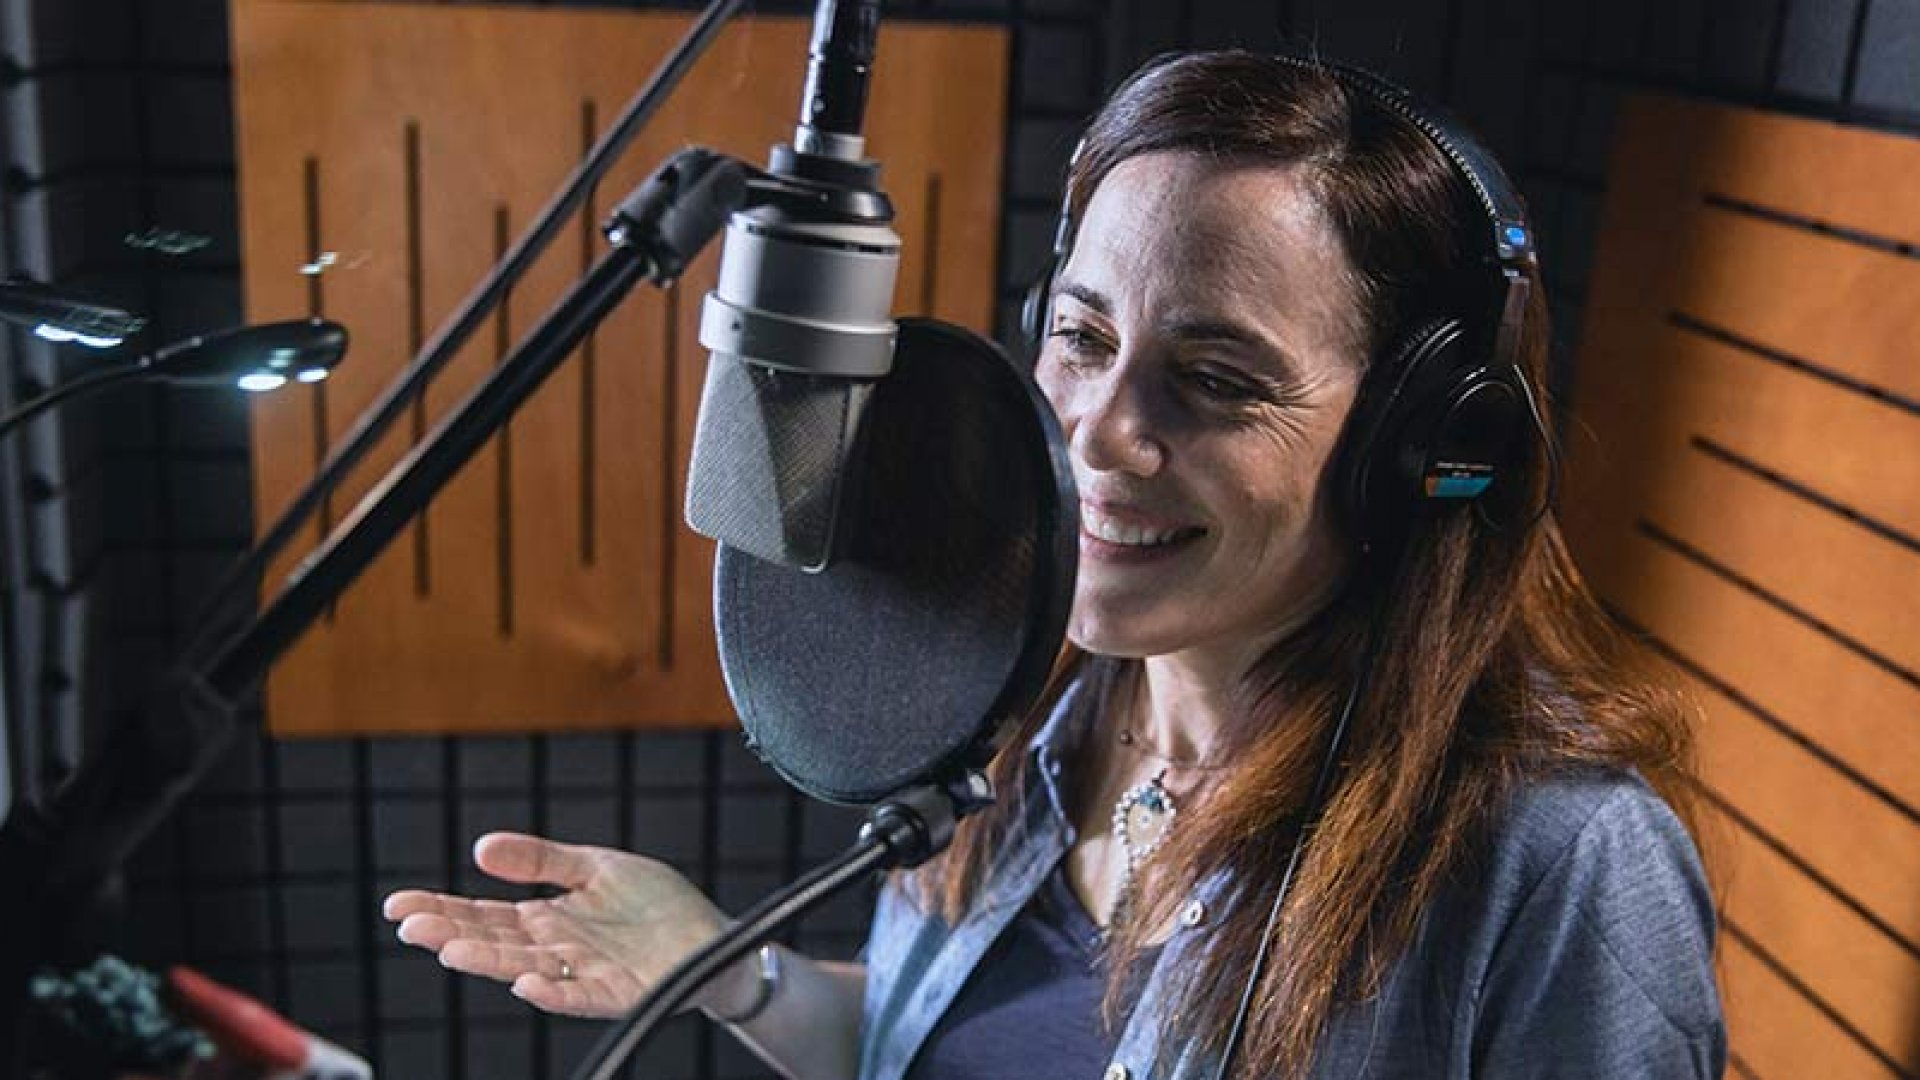 How a Professional Voiceover Actress Grew Her Passion Into a Full-Time Microbusiness